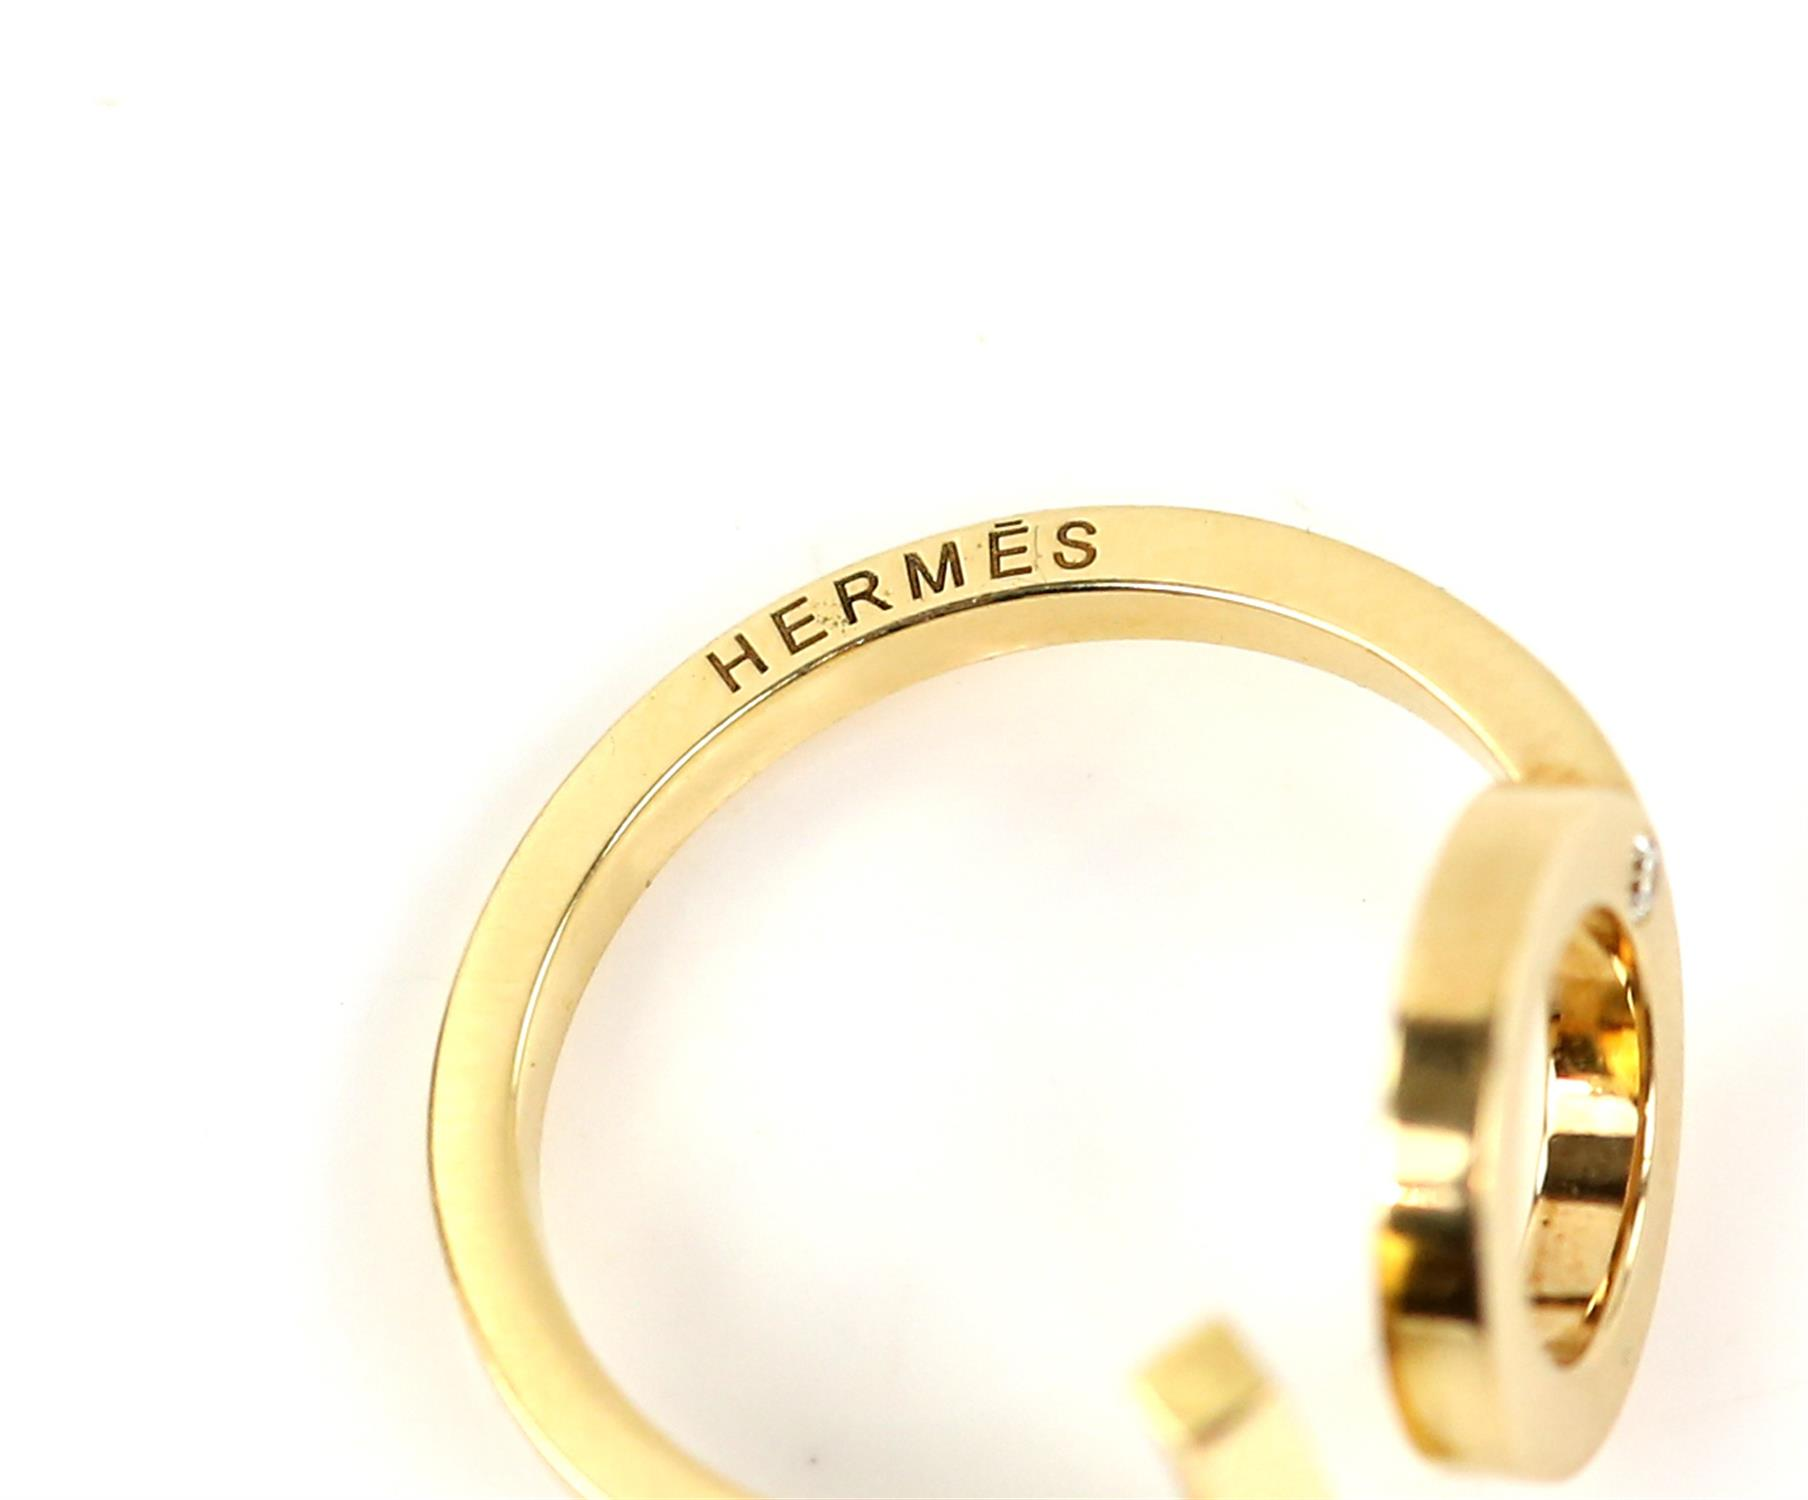 Hermes diamond ring, set with two round brilliant cut diamonds, torque style ring with one circular - Image 4 of 6